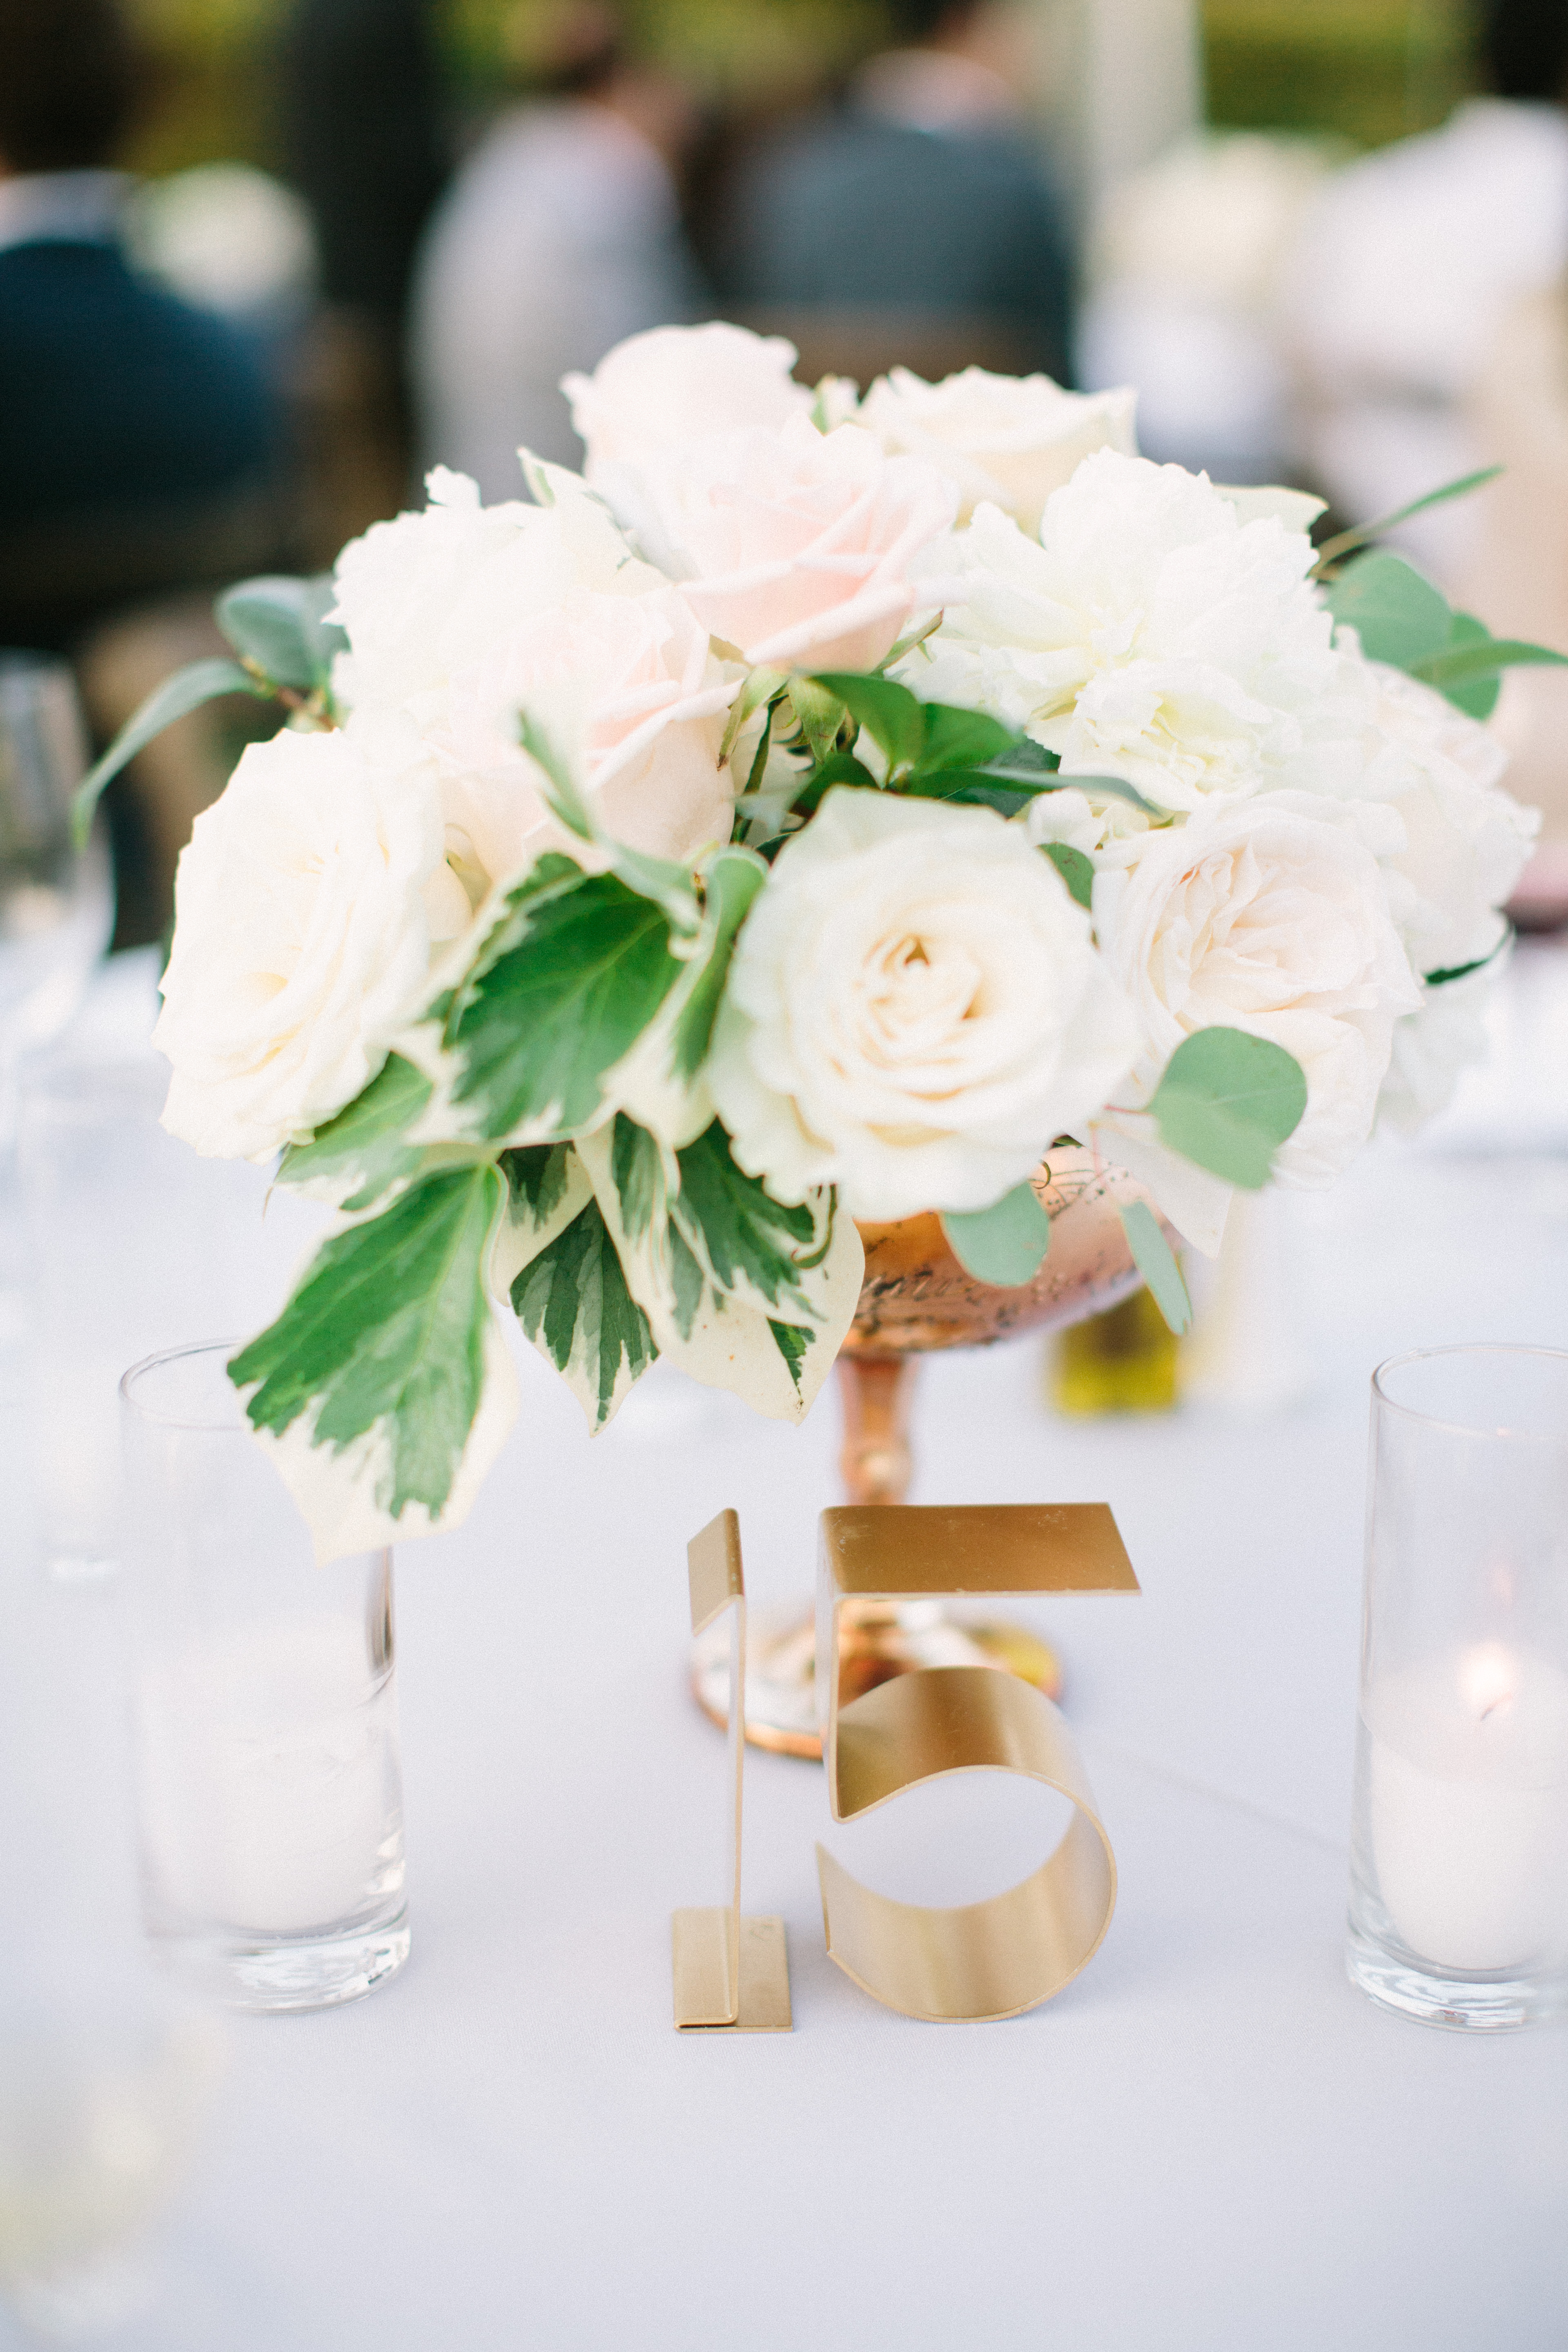 Brass metal wedding table number and white wedding centerpiece